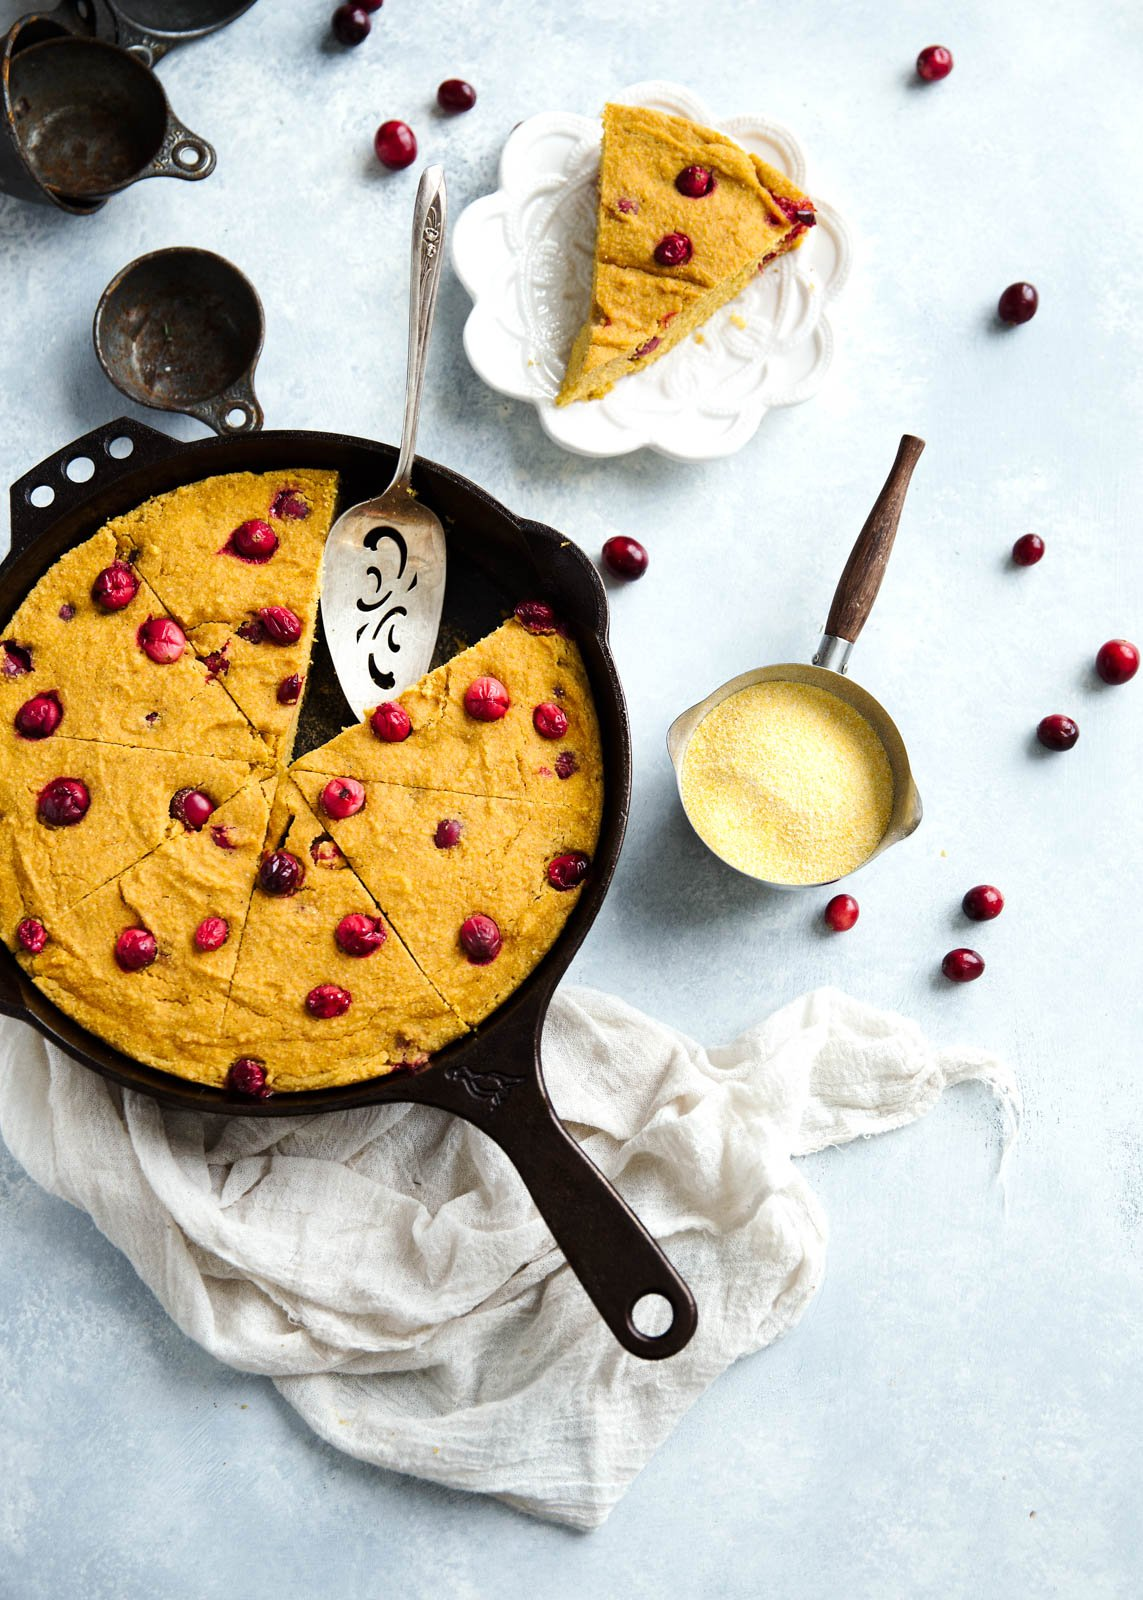 This Pumpkin Cornbread is a lightened up version of traditional cornbread. Made with whole grains, pumpkin, pure maple syrup, speckled with just a hint of brown butter and bursting with juicy, tart cranberries!